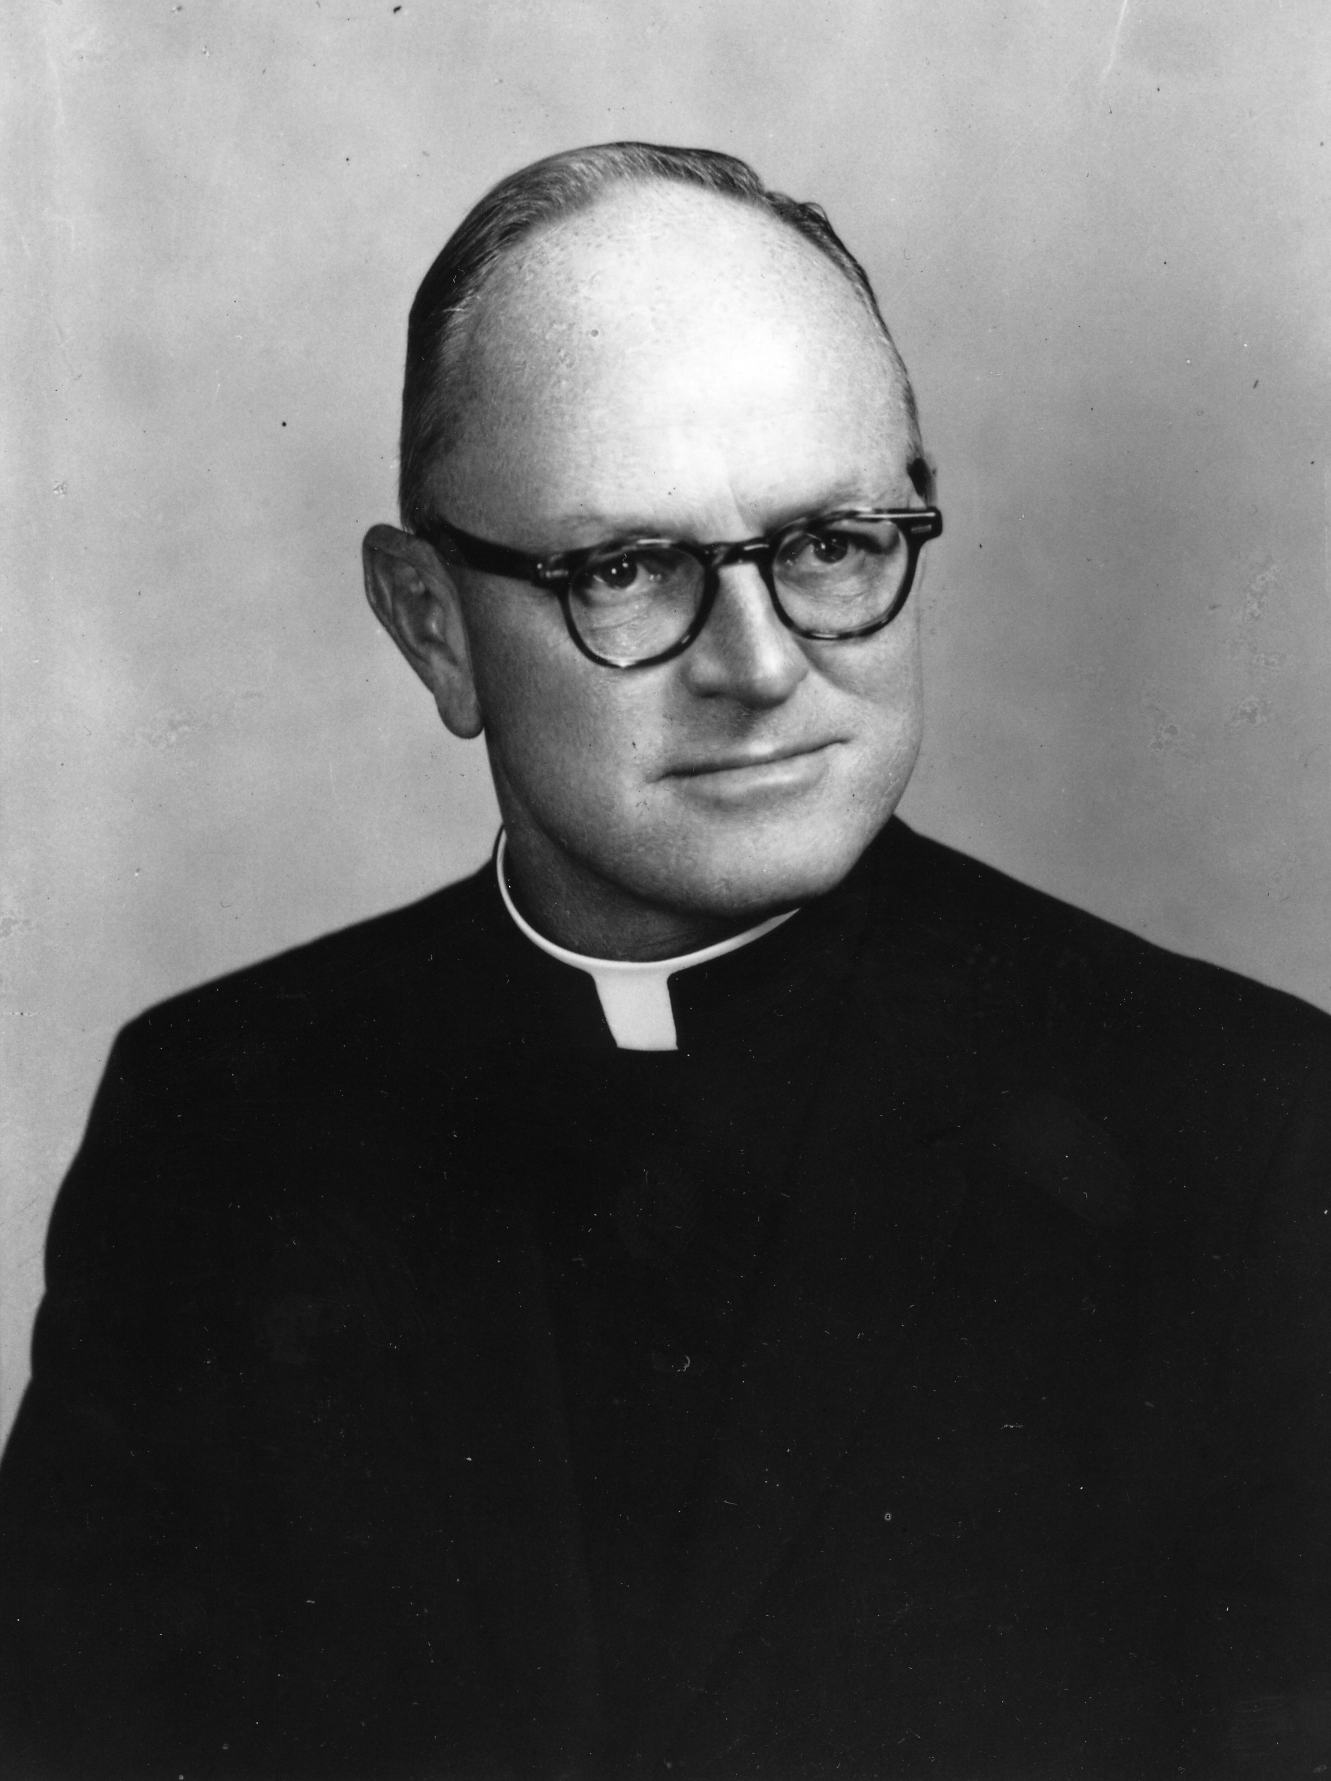 Reverend Joseph A. Flaherty, O.S.A., Ph.D